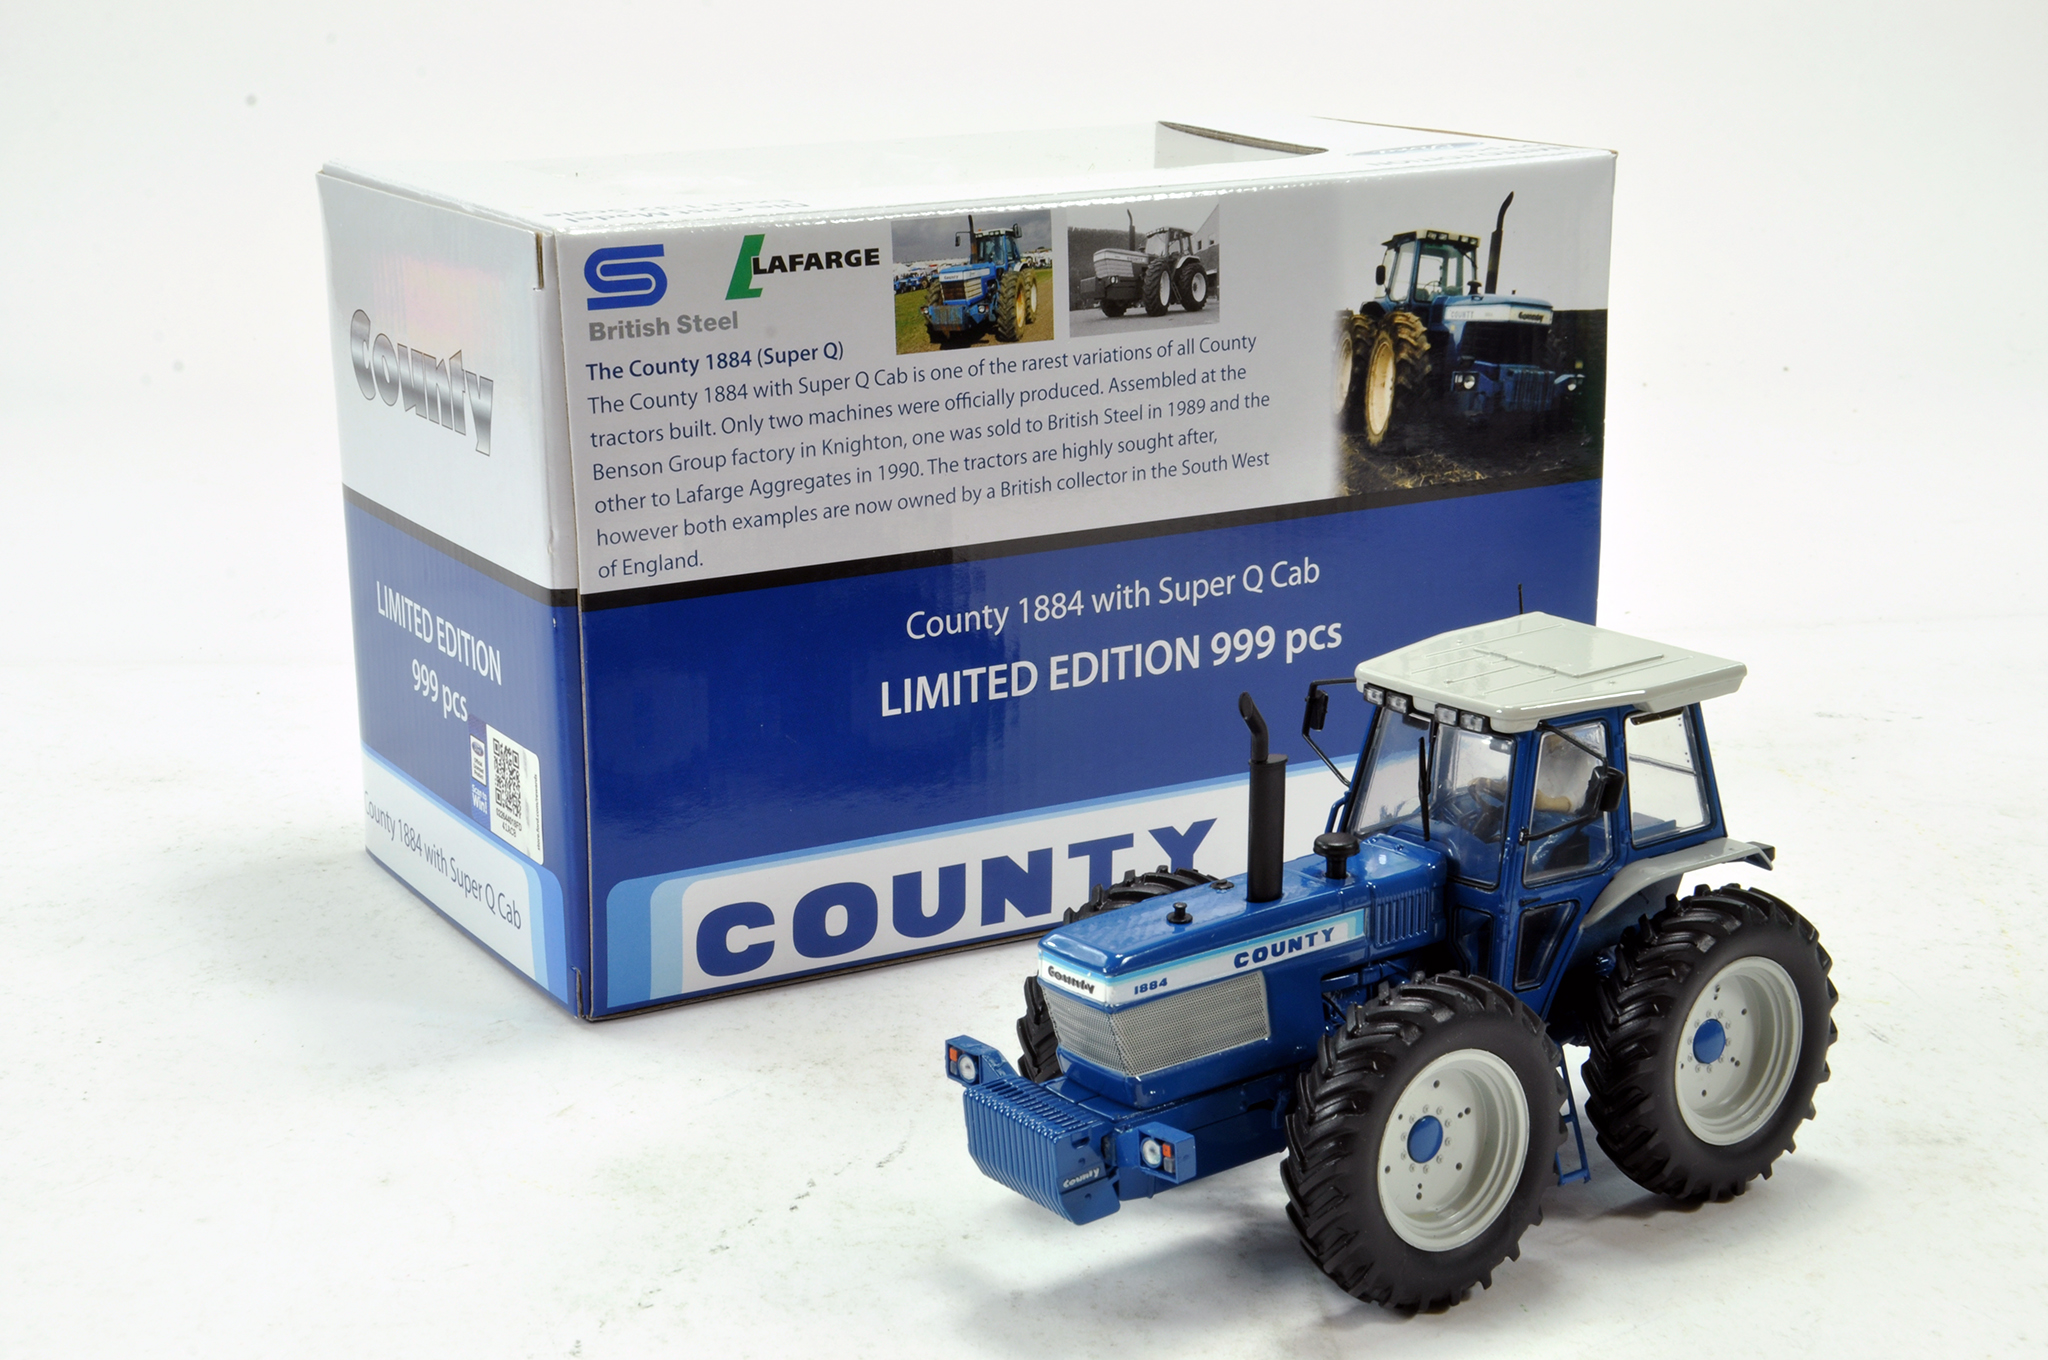 Lot 781 - Universal Hobbies 1/32 County 1884 Super Q Special Edition Tractor. Excellent in Box.